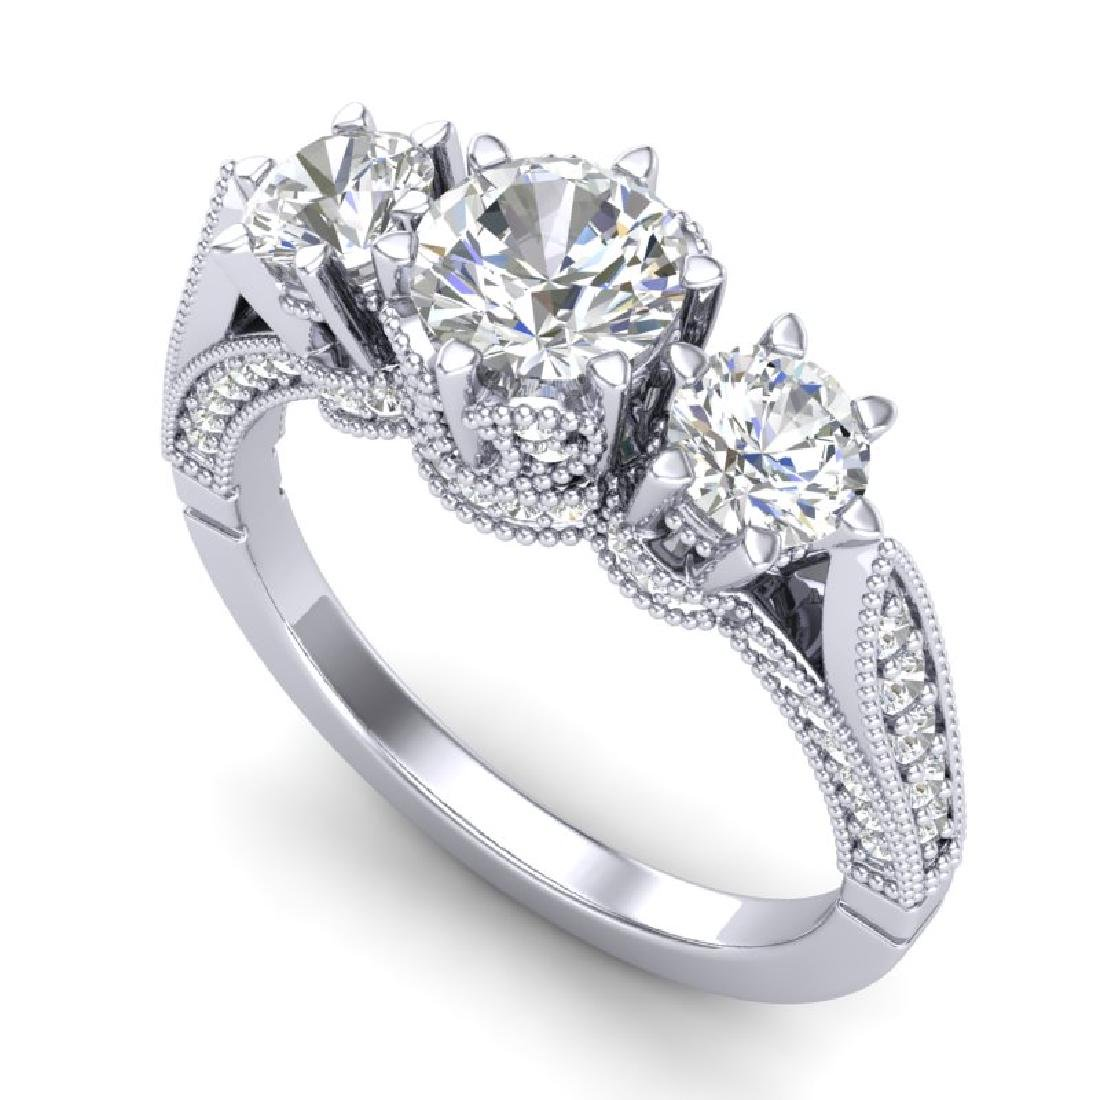 2.18 CTW VS/SI Diamond Art Deco 3 Stone Ring 18K White